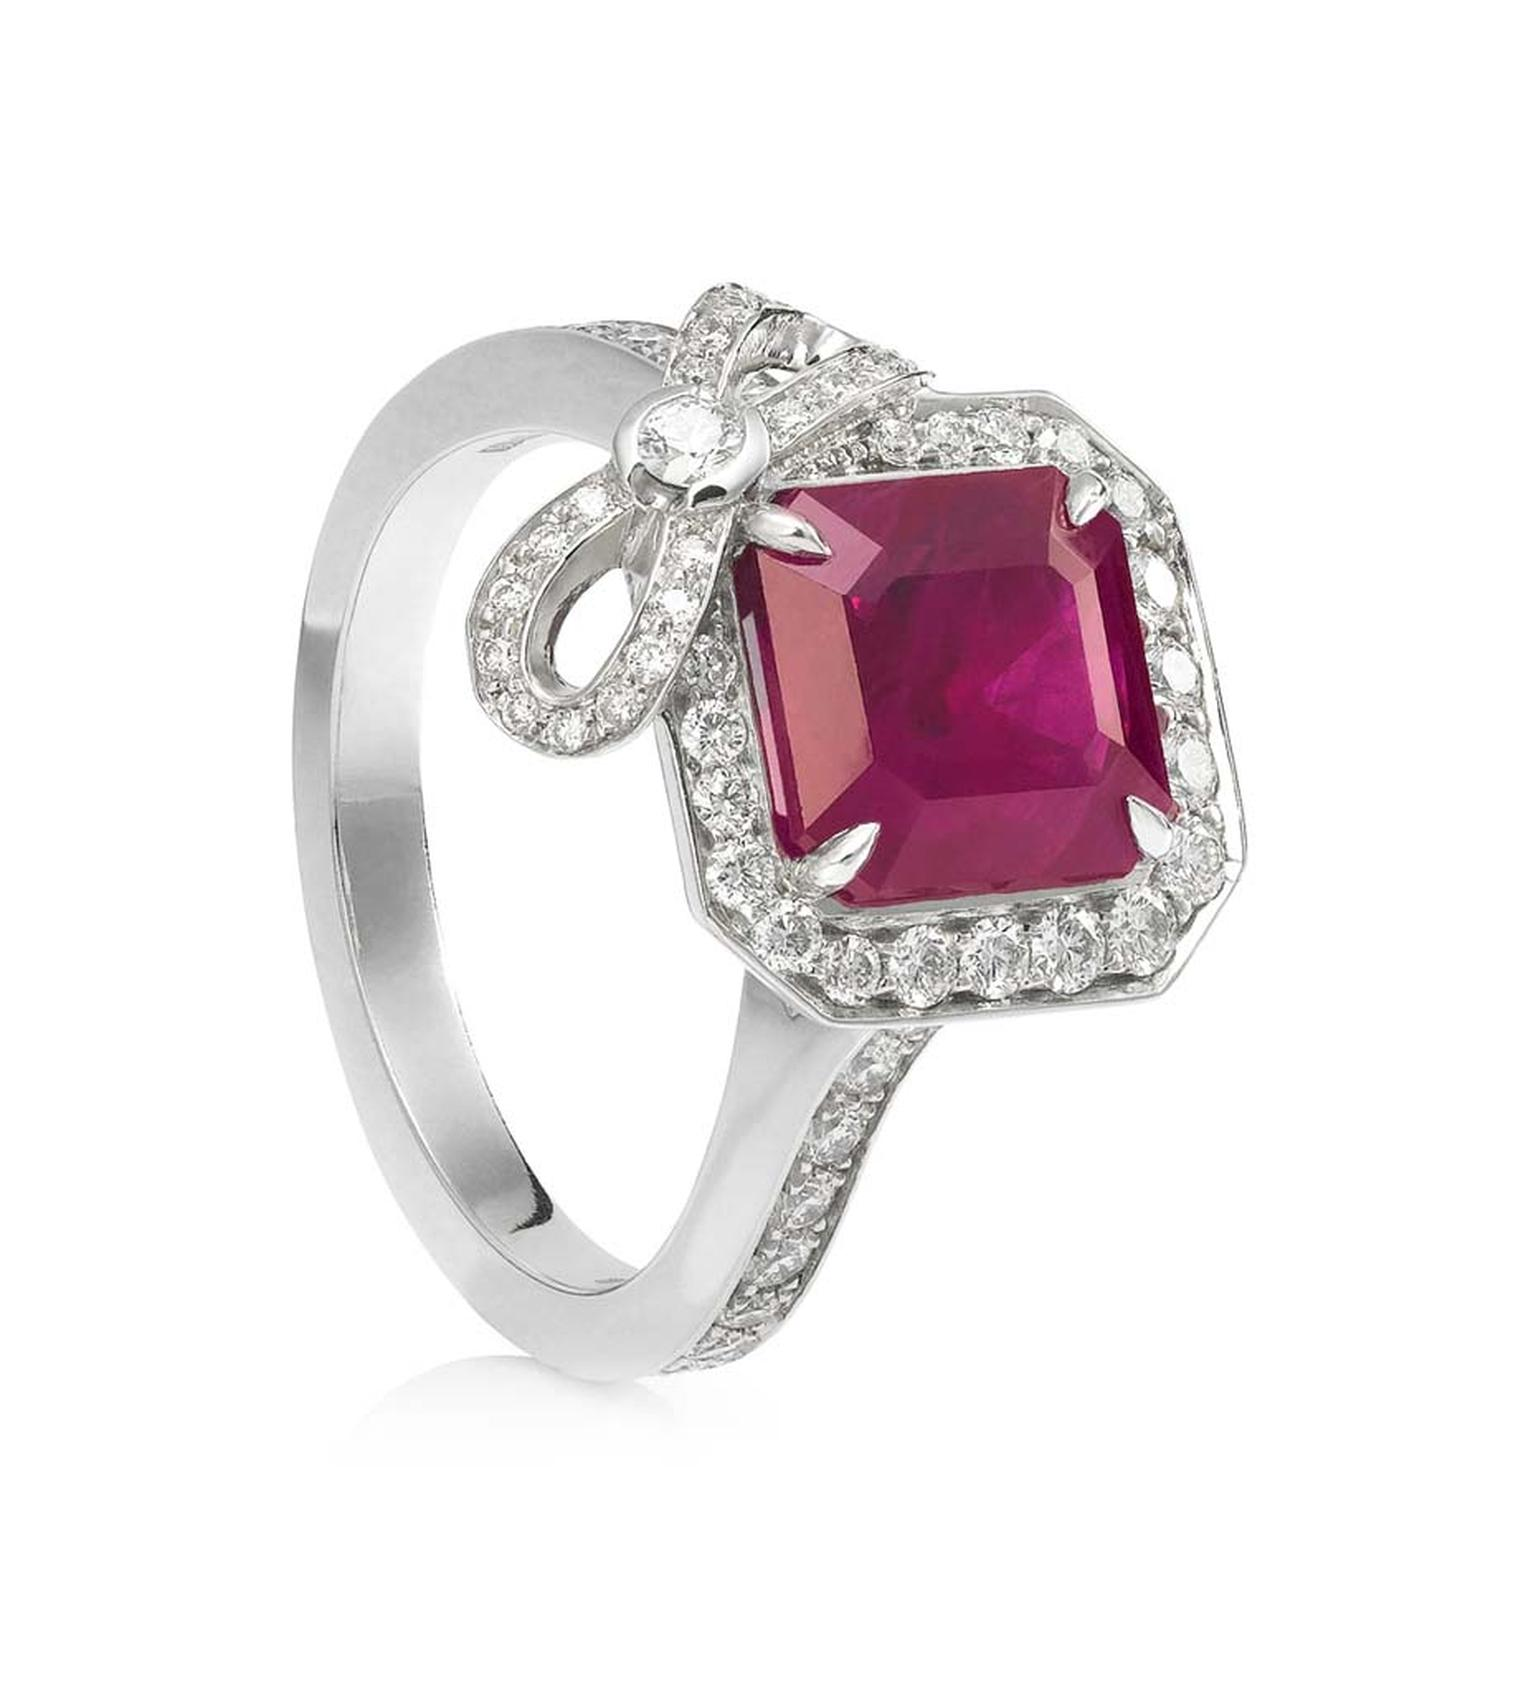 Boodles Vintage Rosette cushion-cut ruby engagement ring in platinum surrounded by melée diamonds and a pretty diamond bow.